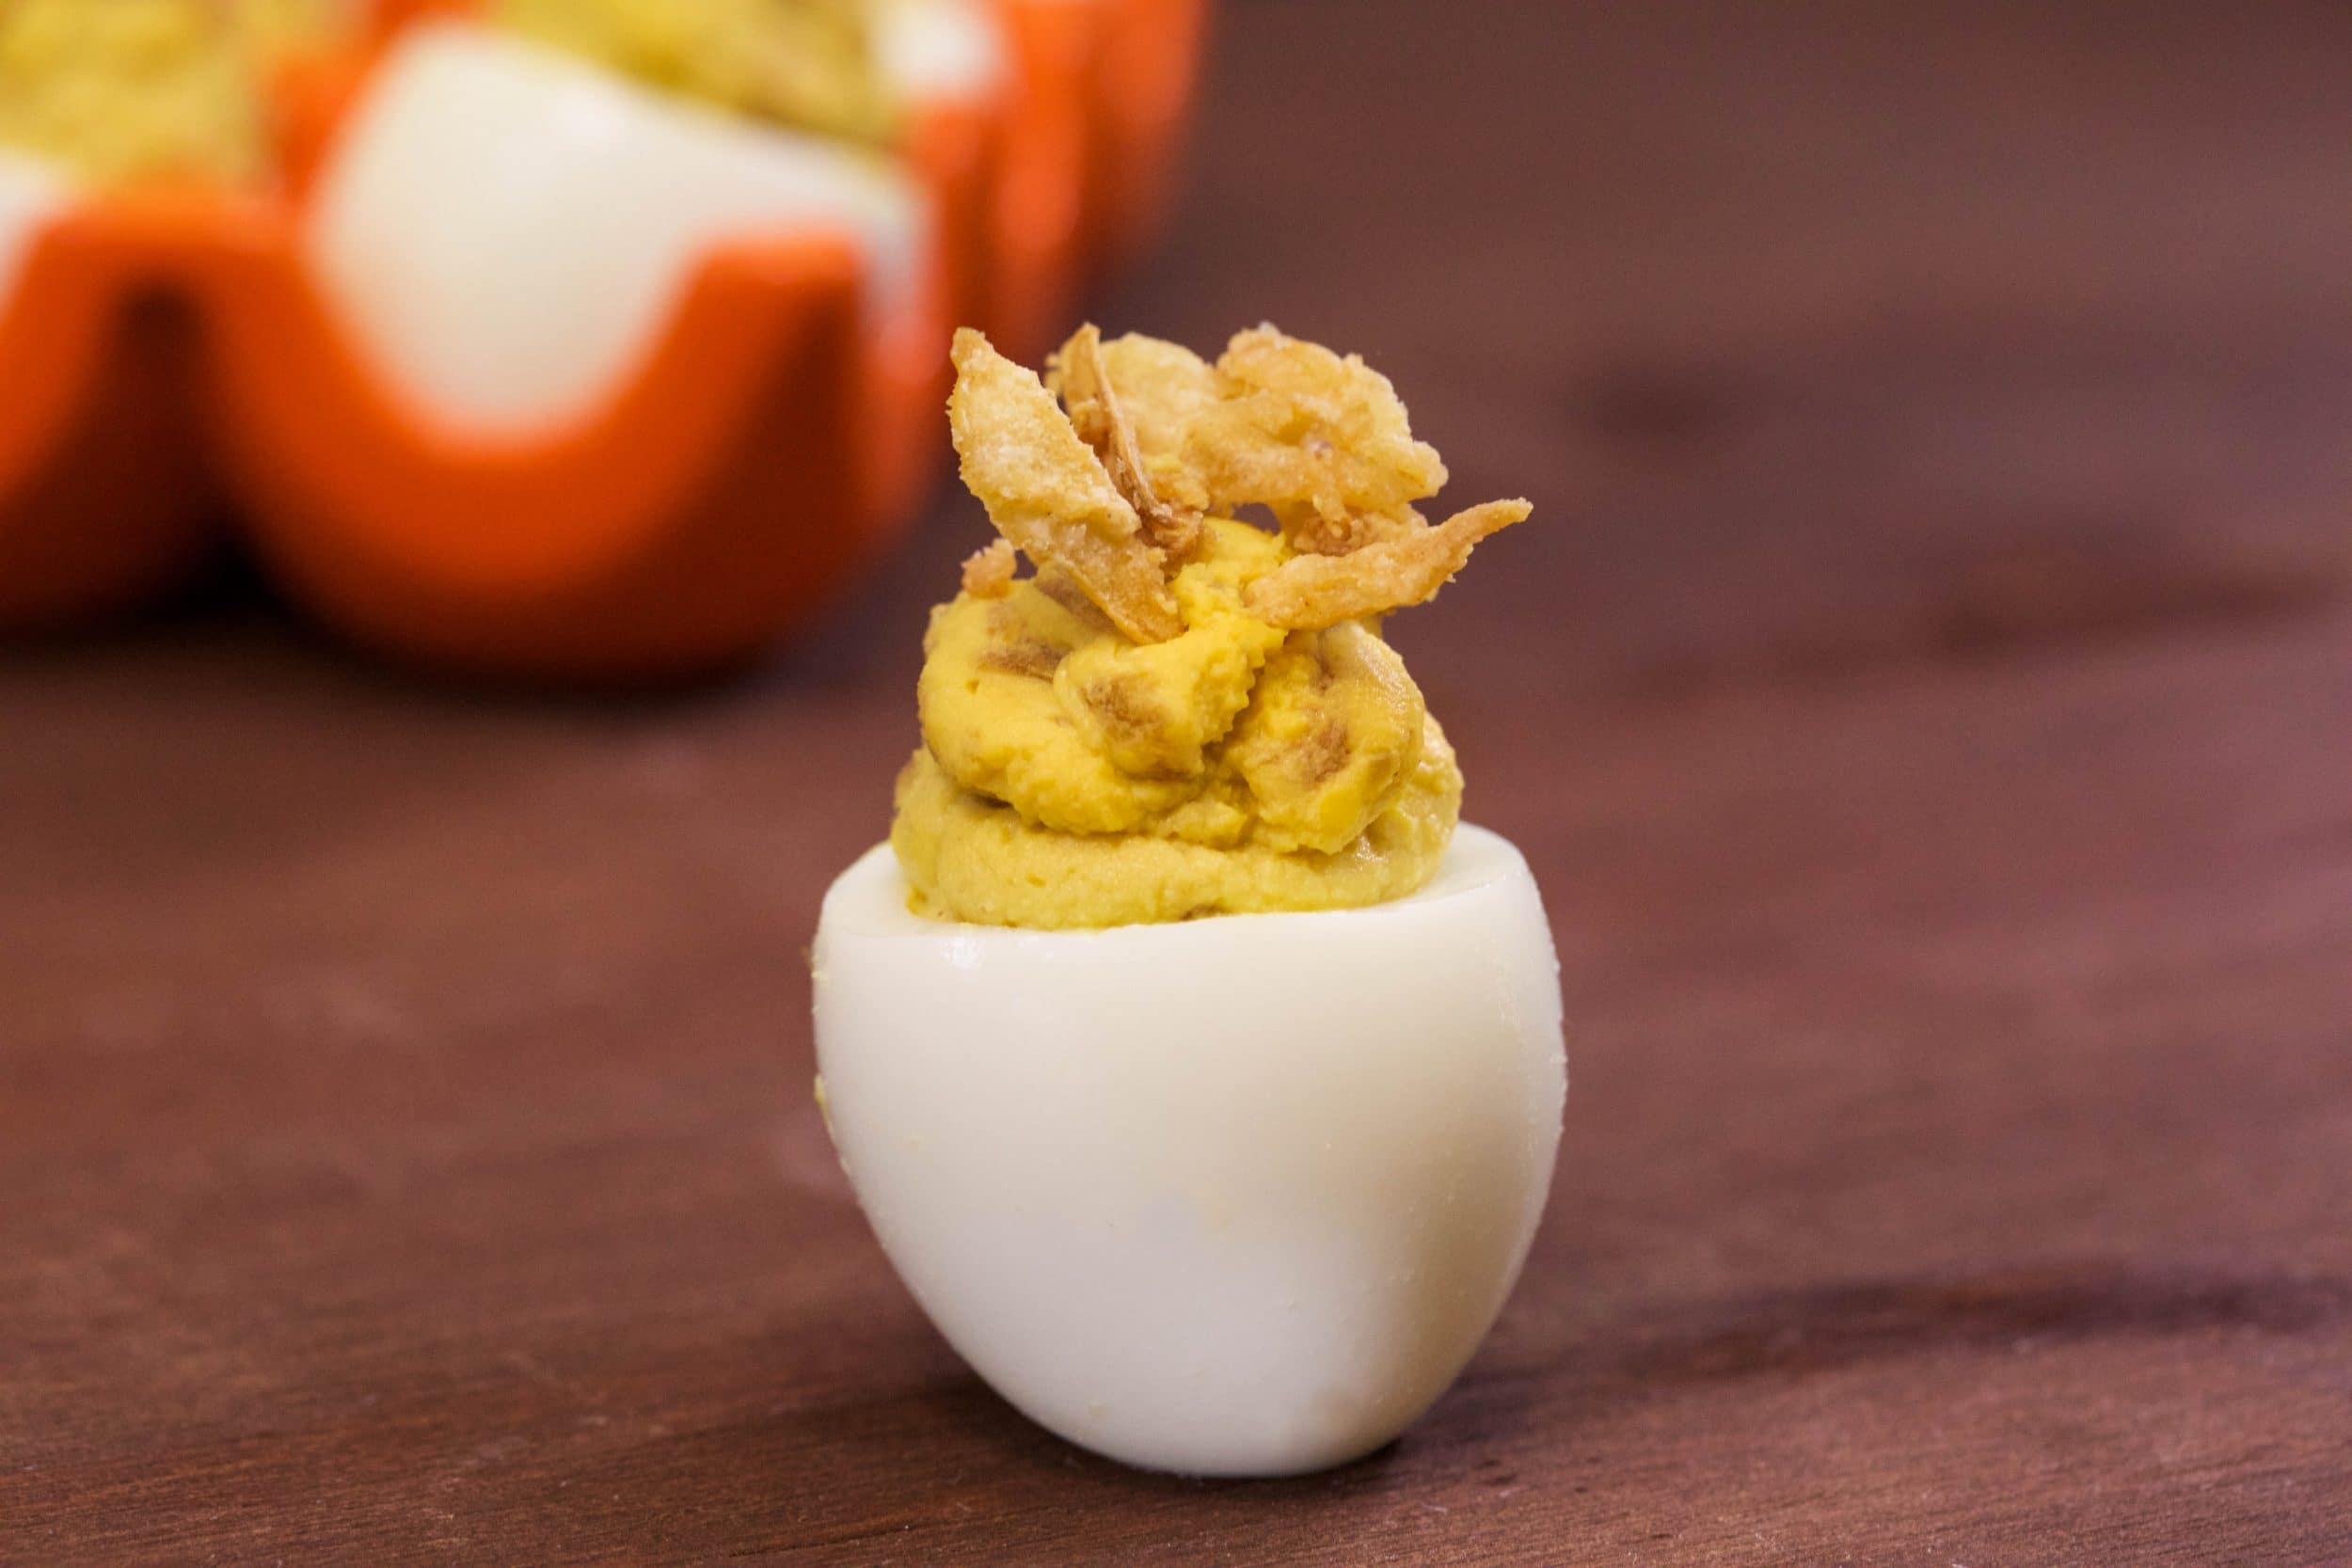 Sour Cream and Onion Stuffed Eggs